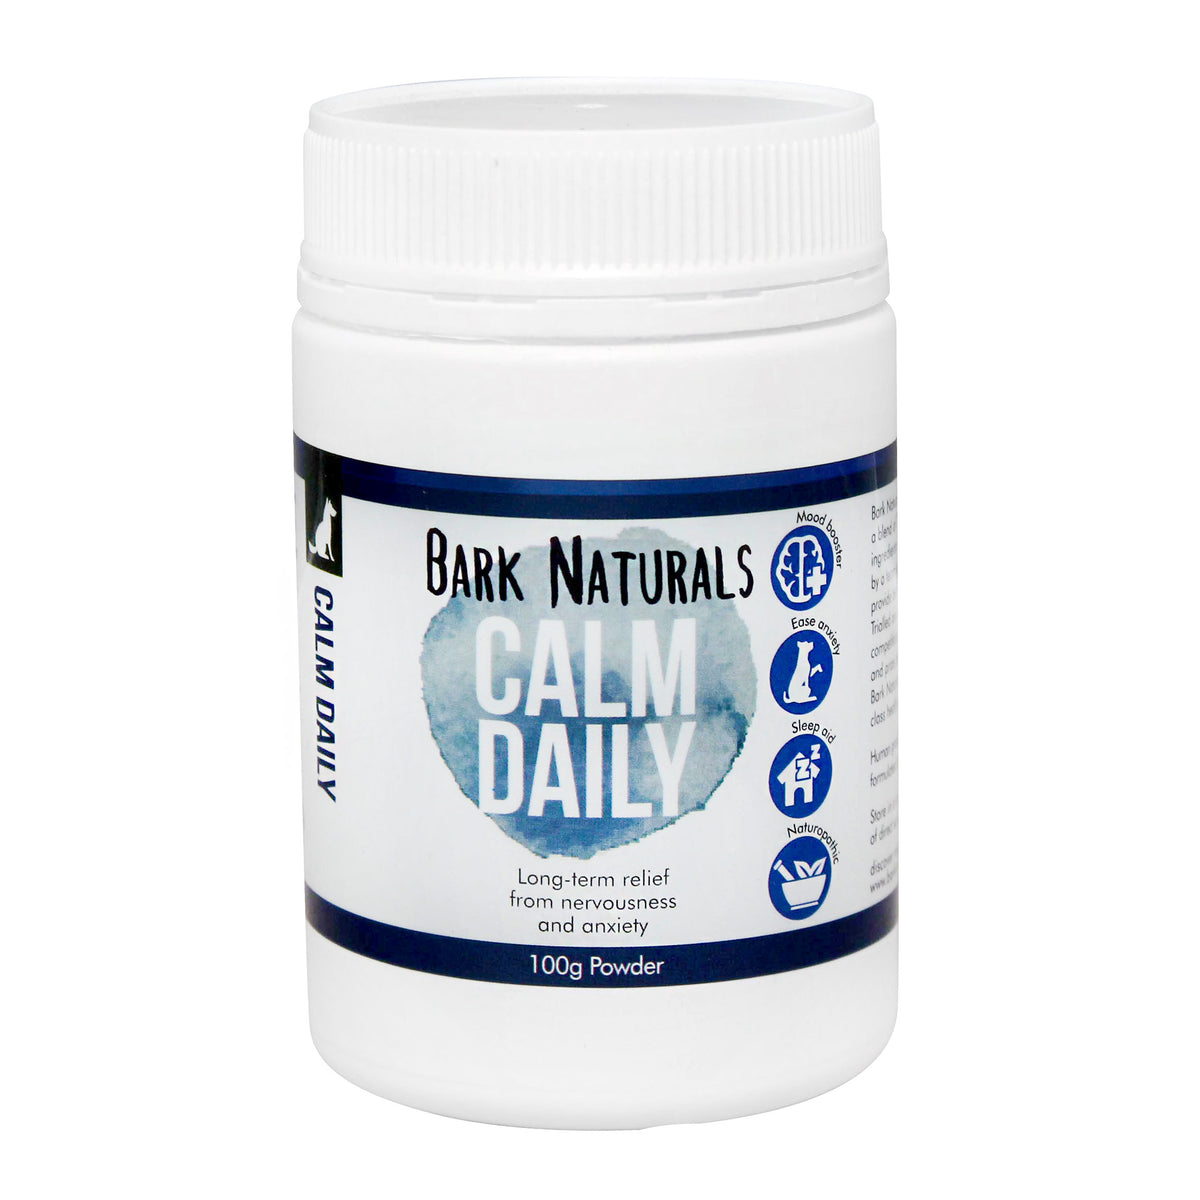 Bark Naturals Calm Daily for long term relief from nervousness and anxiety in dogs.